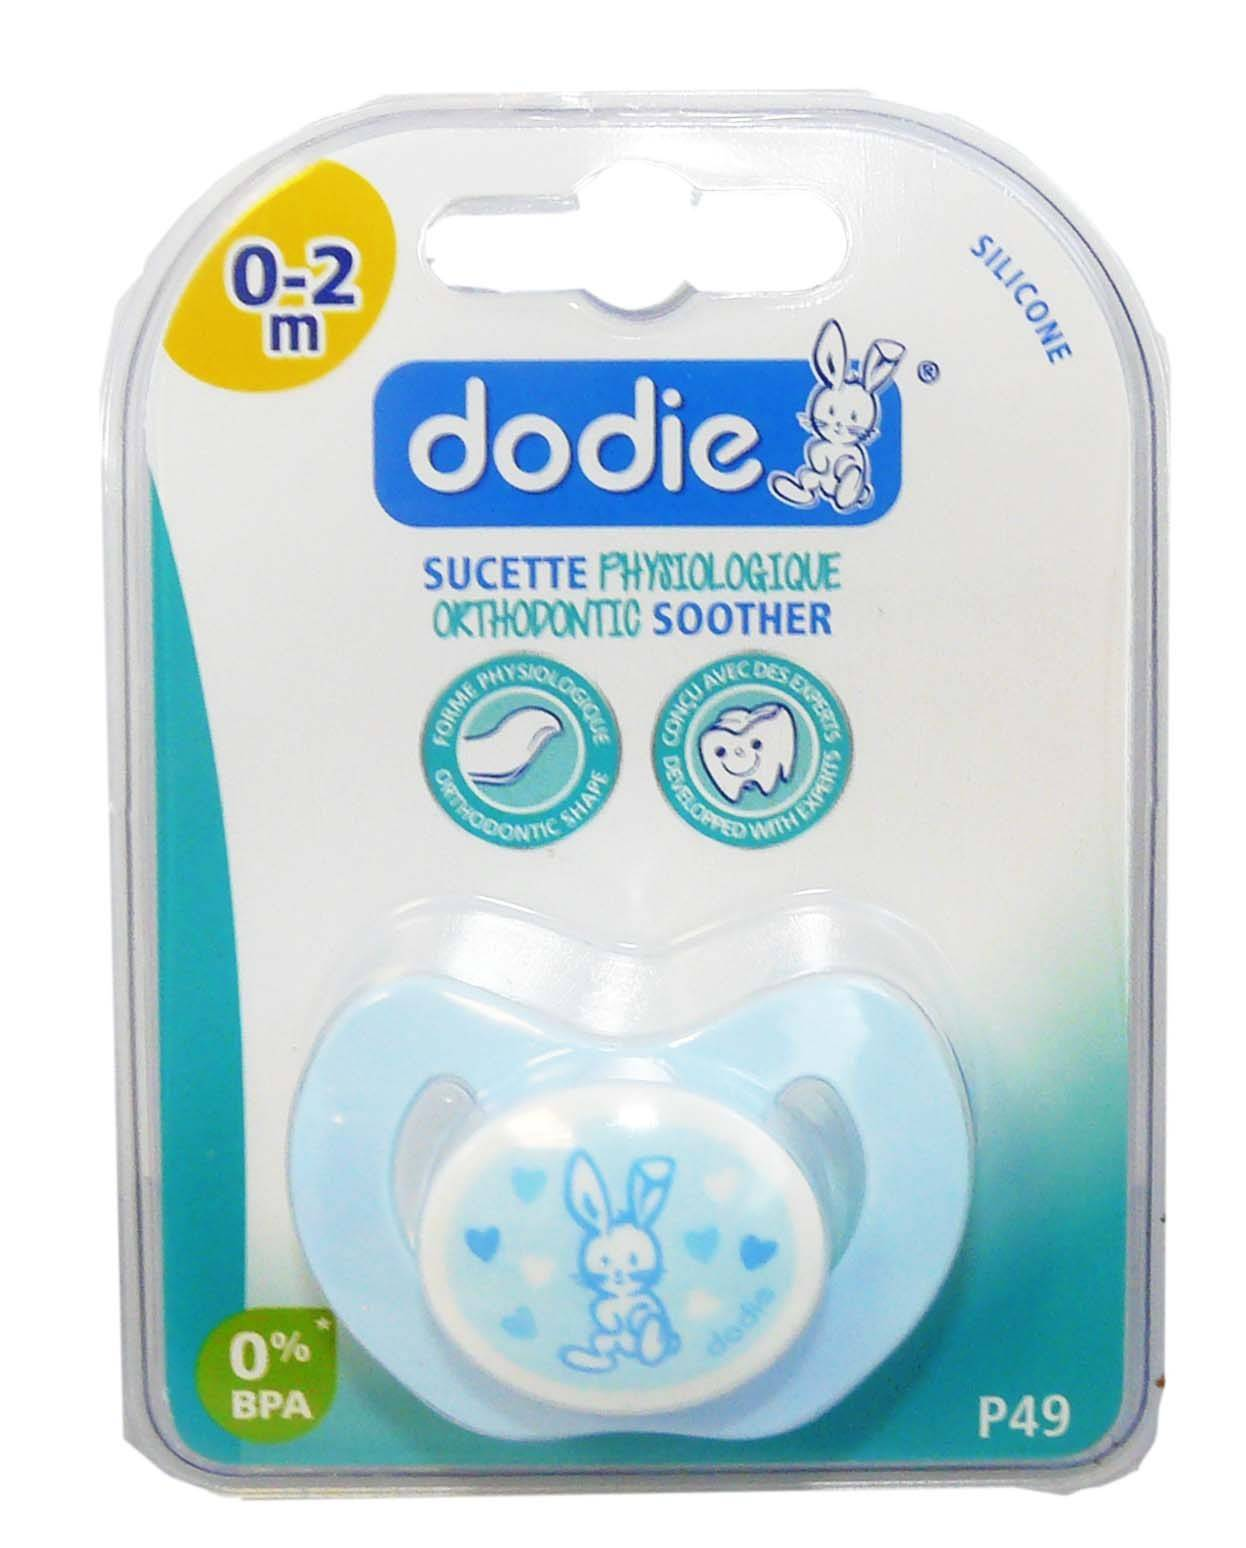 Dodie sucette orthodontic silicone 0-2 mois p49